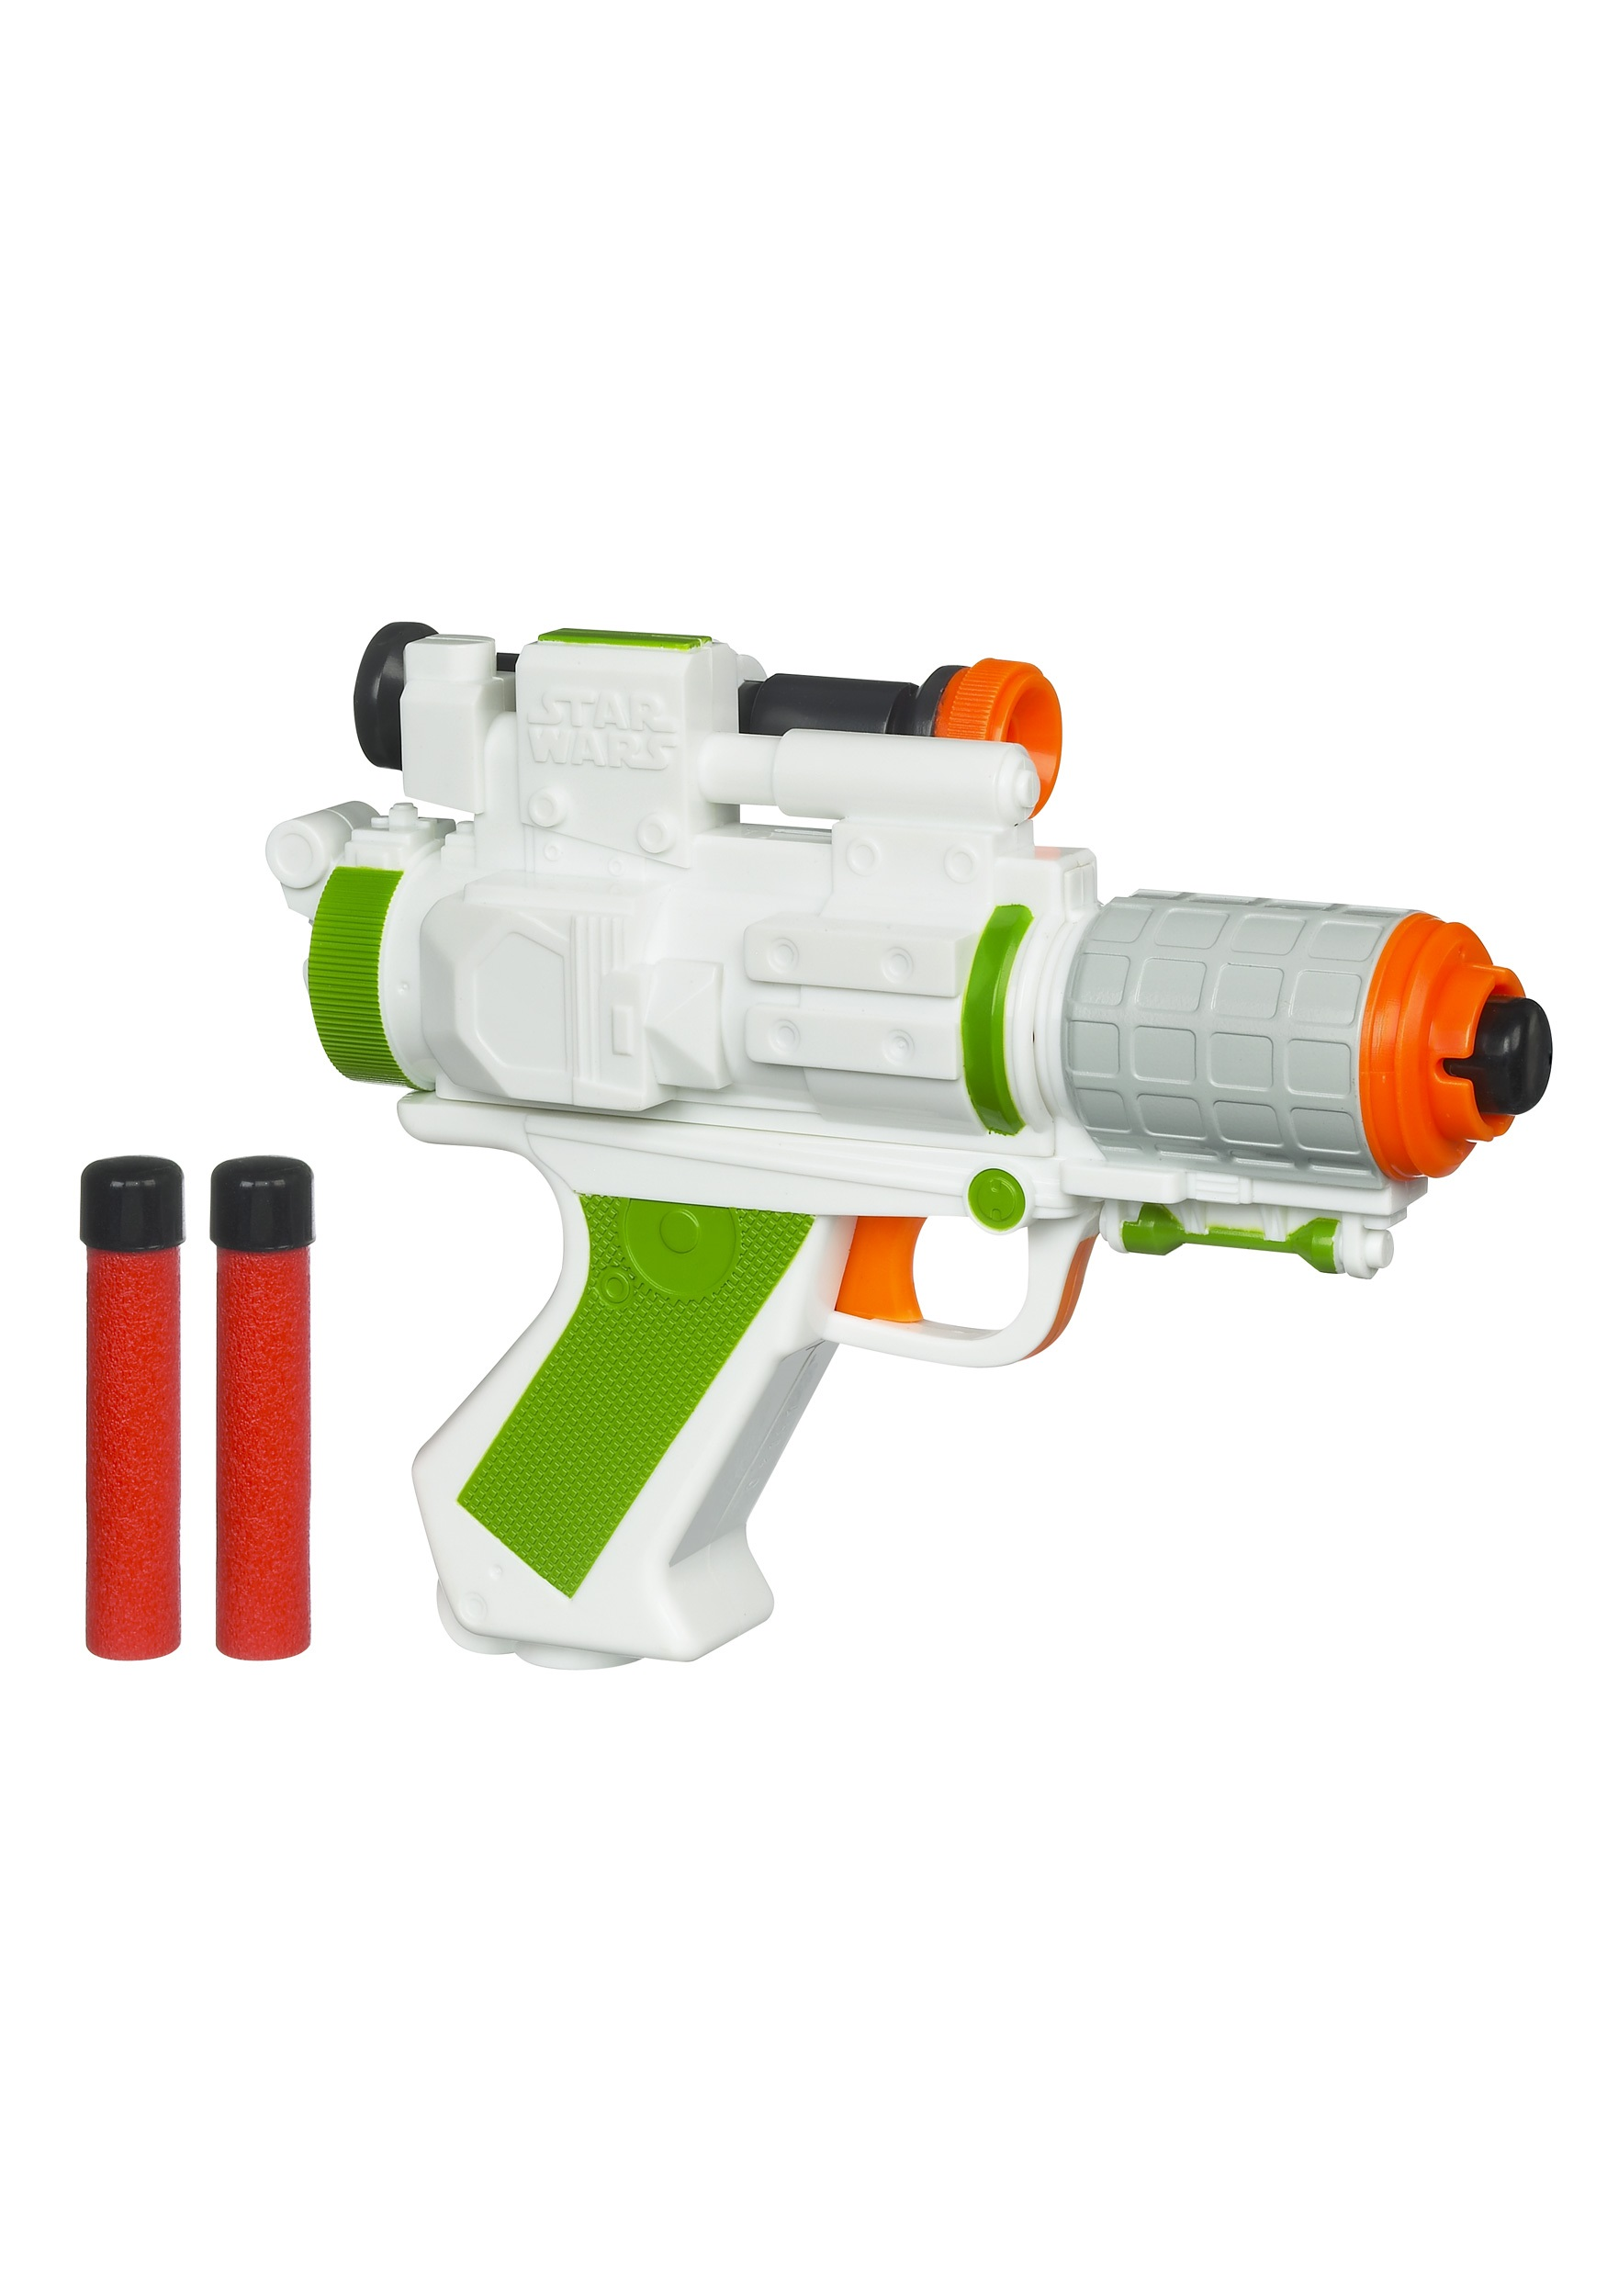 Star Wars General Grievous Blaster  sc 1 st  Halloween Costumes & Star Wars General Grievous Blaster - Halloween Costumes